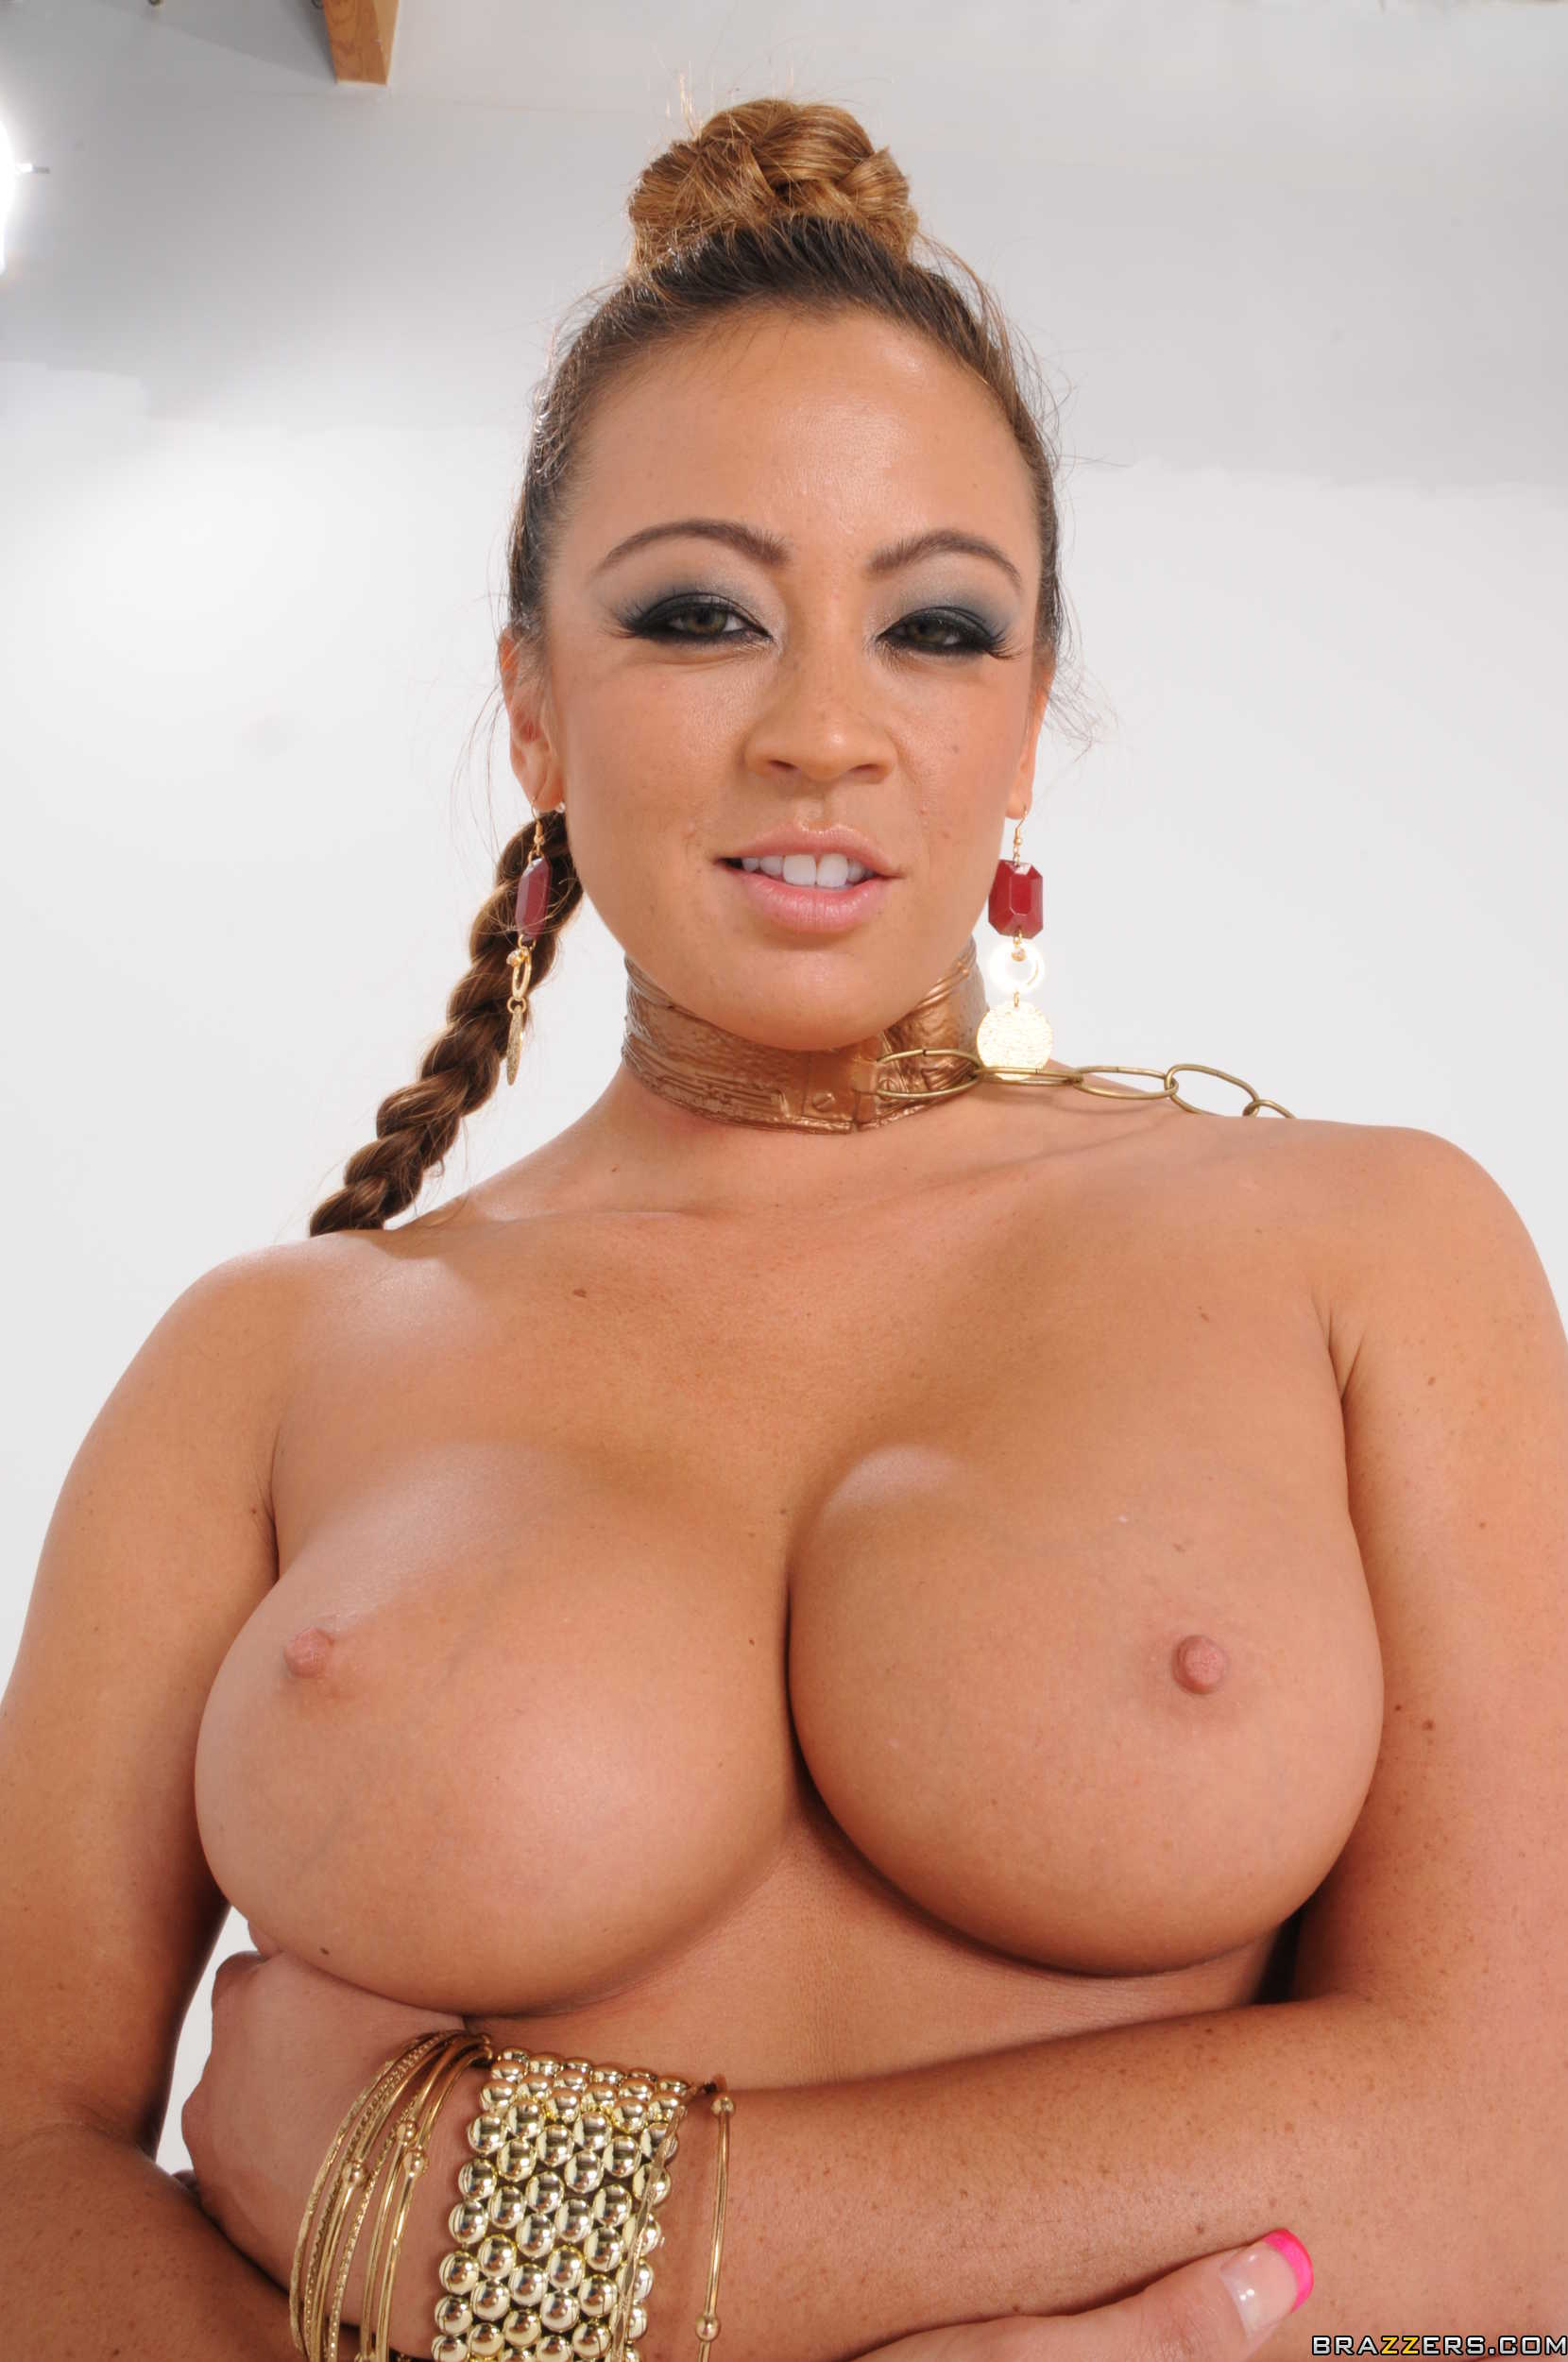 Busty babe mia in her first porn shoot 2